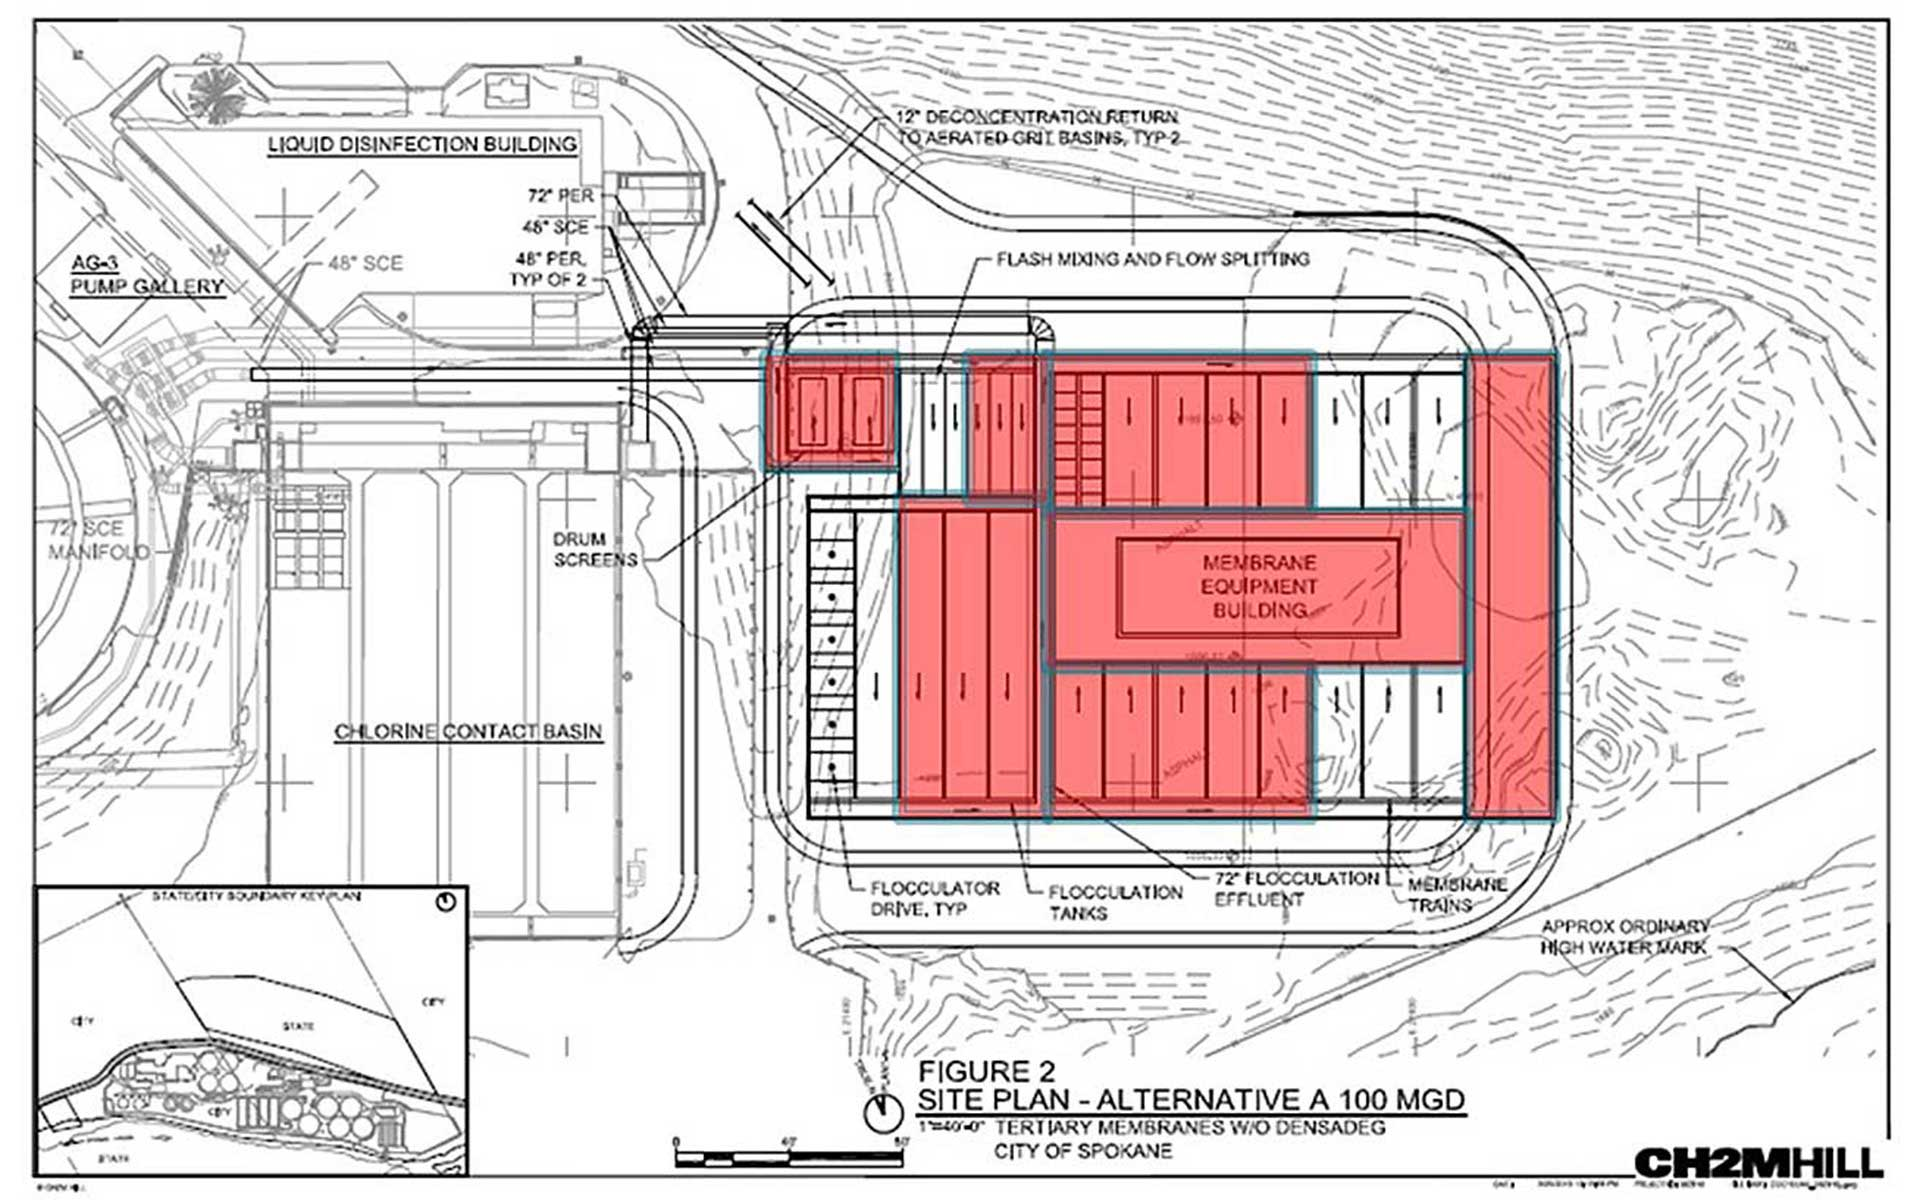 Next Level of Treatmen site plan